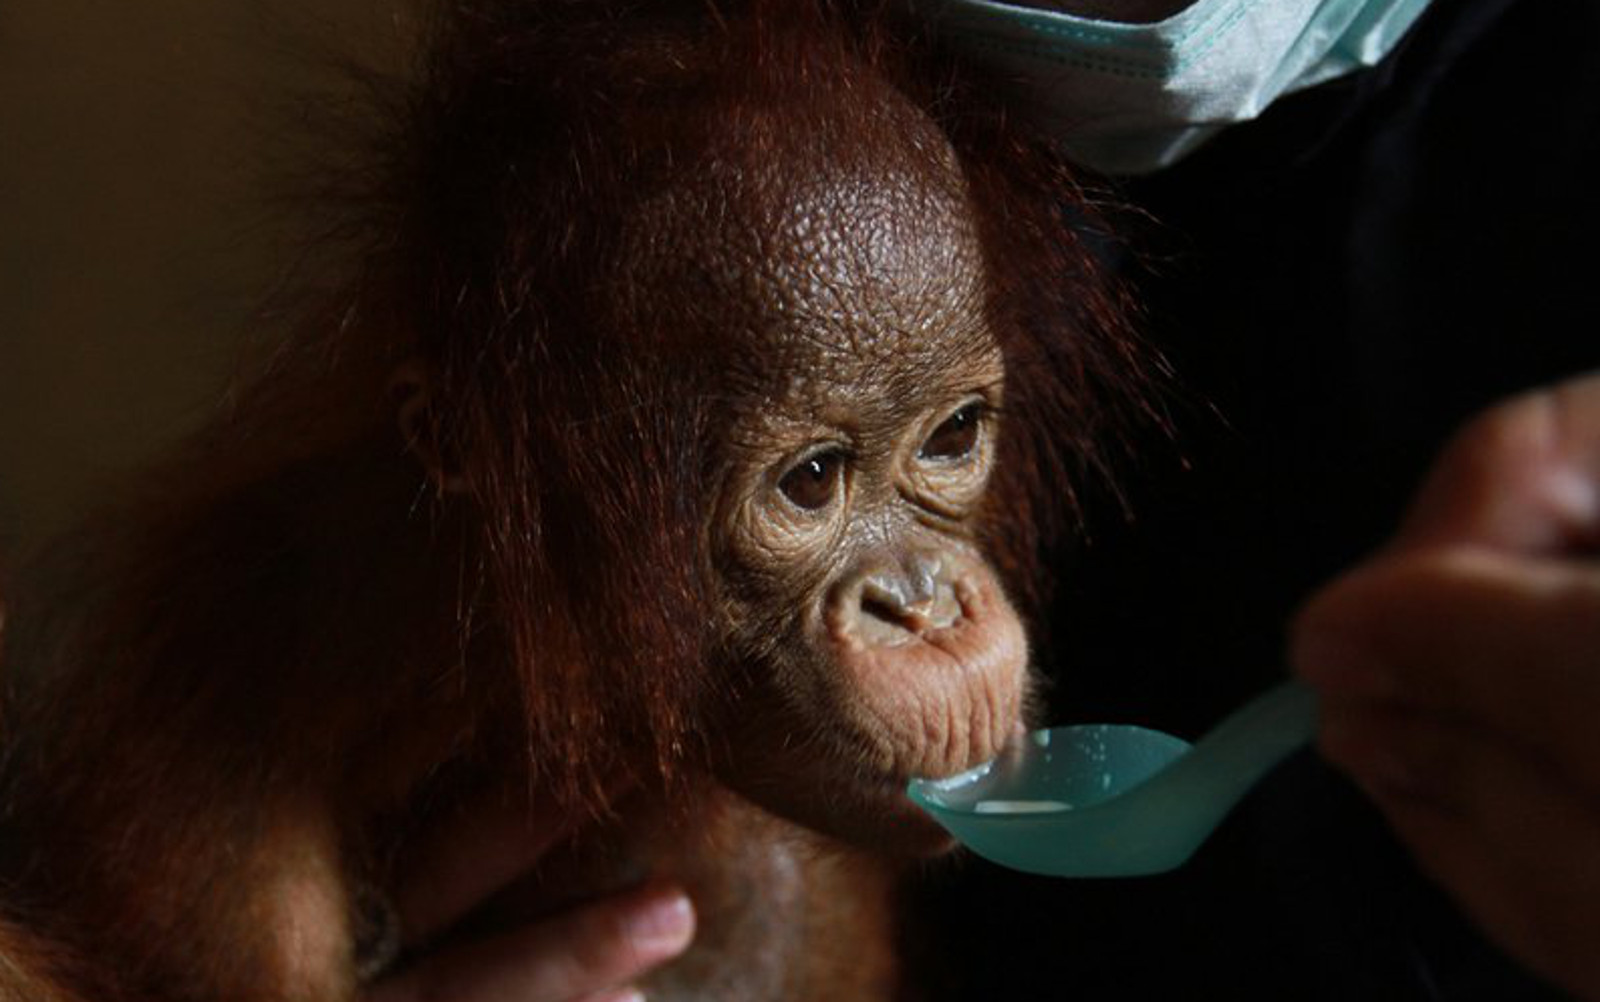 Snack and Personal Care Companies Commit to End Palm Oil Deforestation – Who is Actually Taking Action?